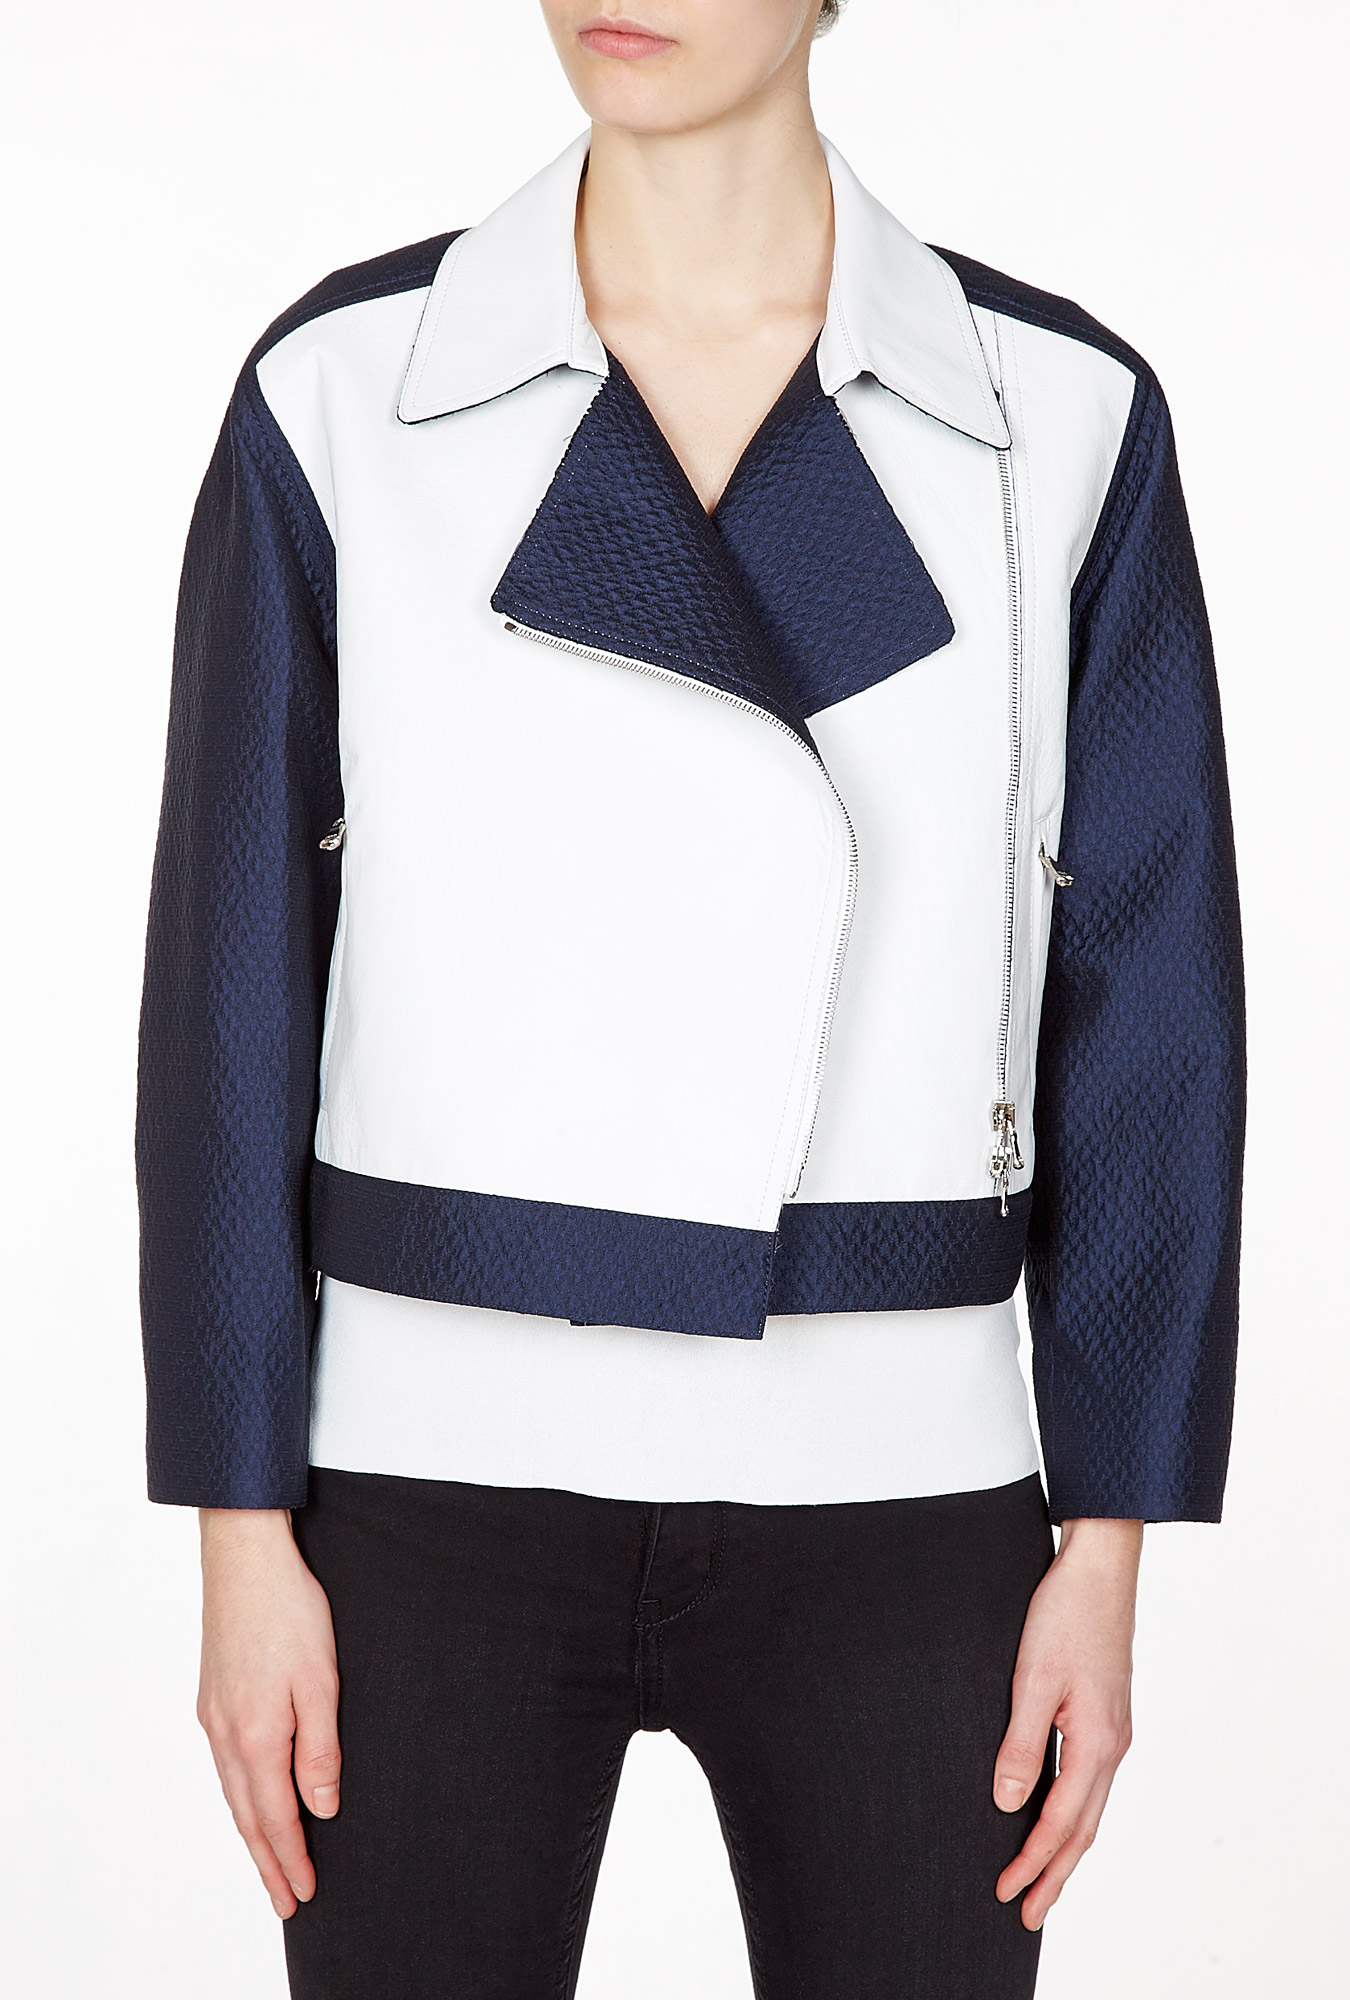 3.1 Phillip Lim  | Leather Combo Jacket by 3.1 Phillip Lim